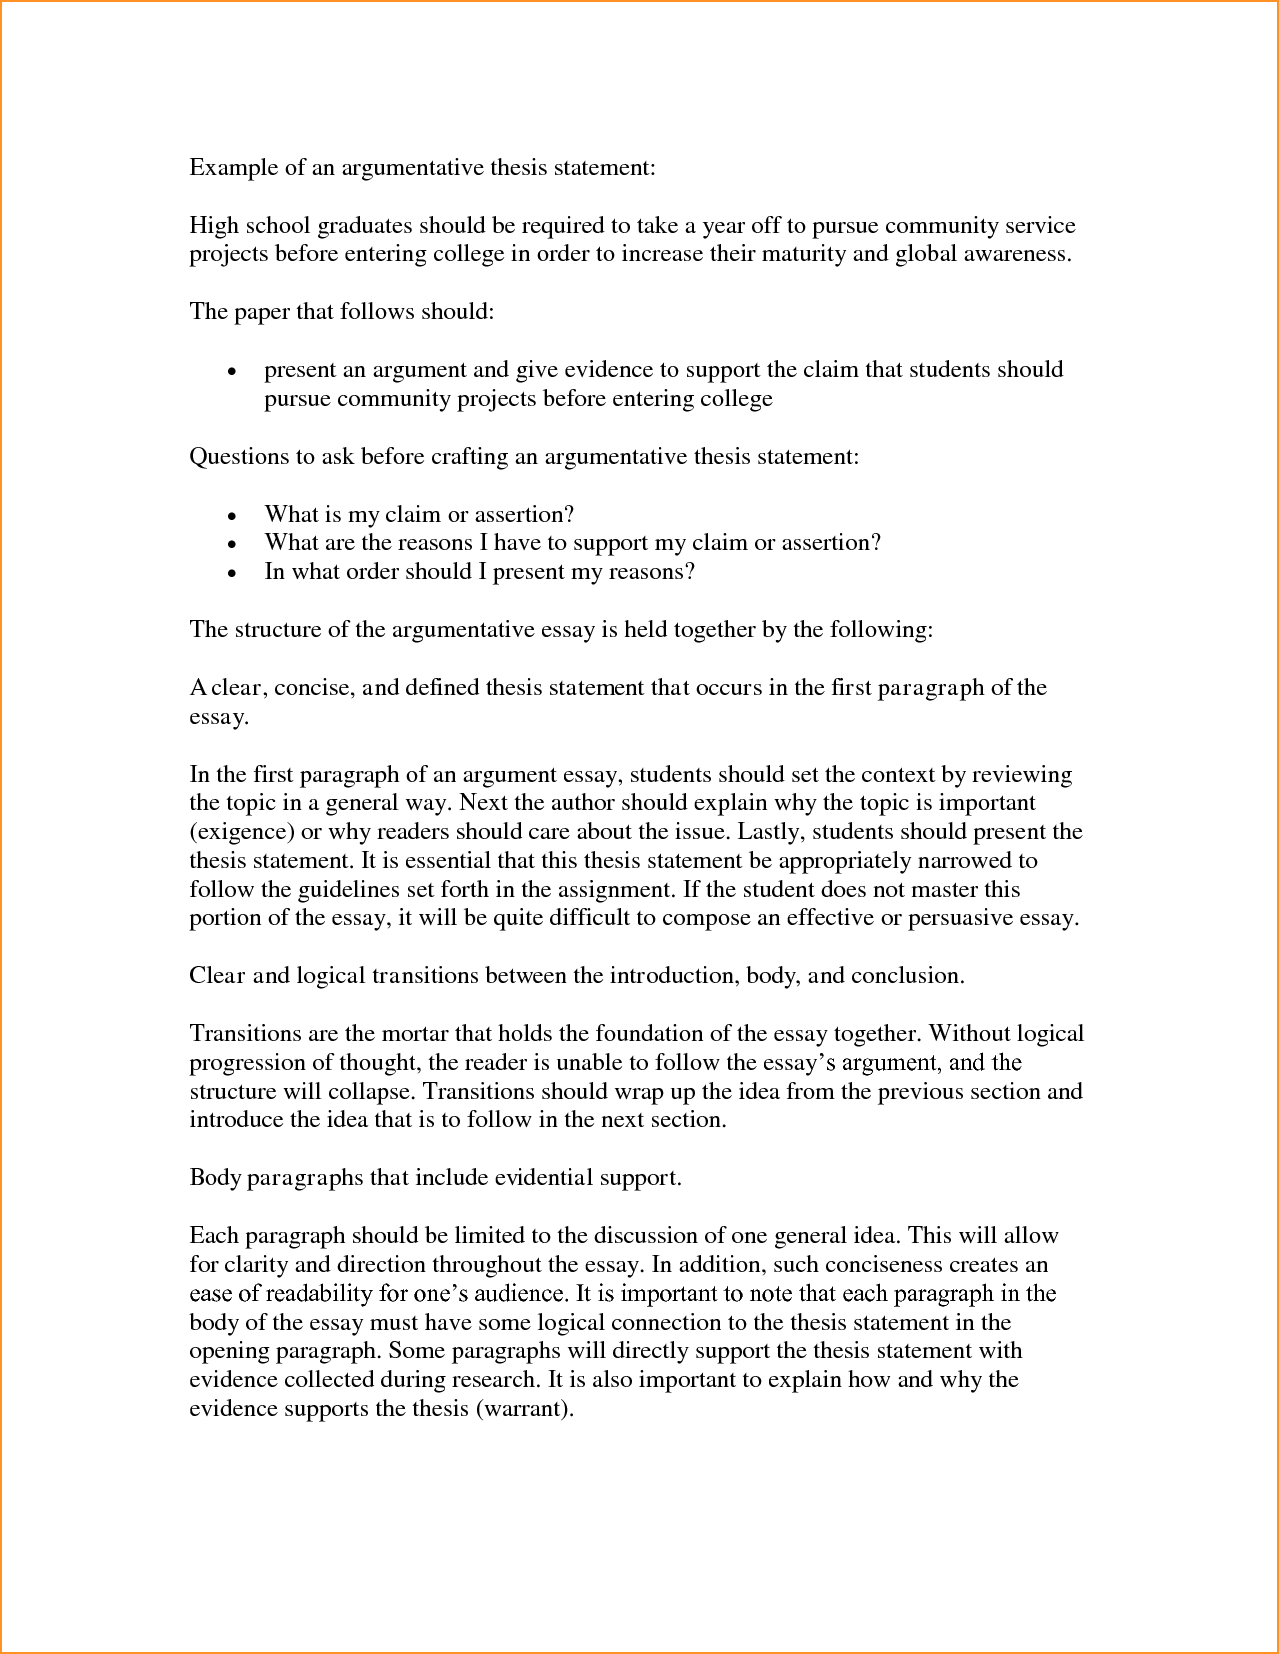 Examples Of Thesis Statements Essay On Management And Leadership Public Health Essay Examples Of Thesis Statements How To Write A Proposal Essay Example also English Short Essays